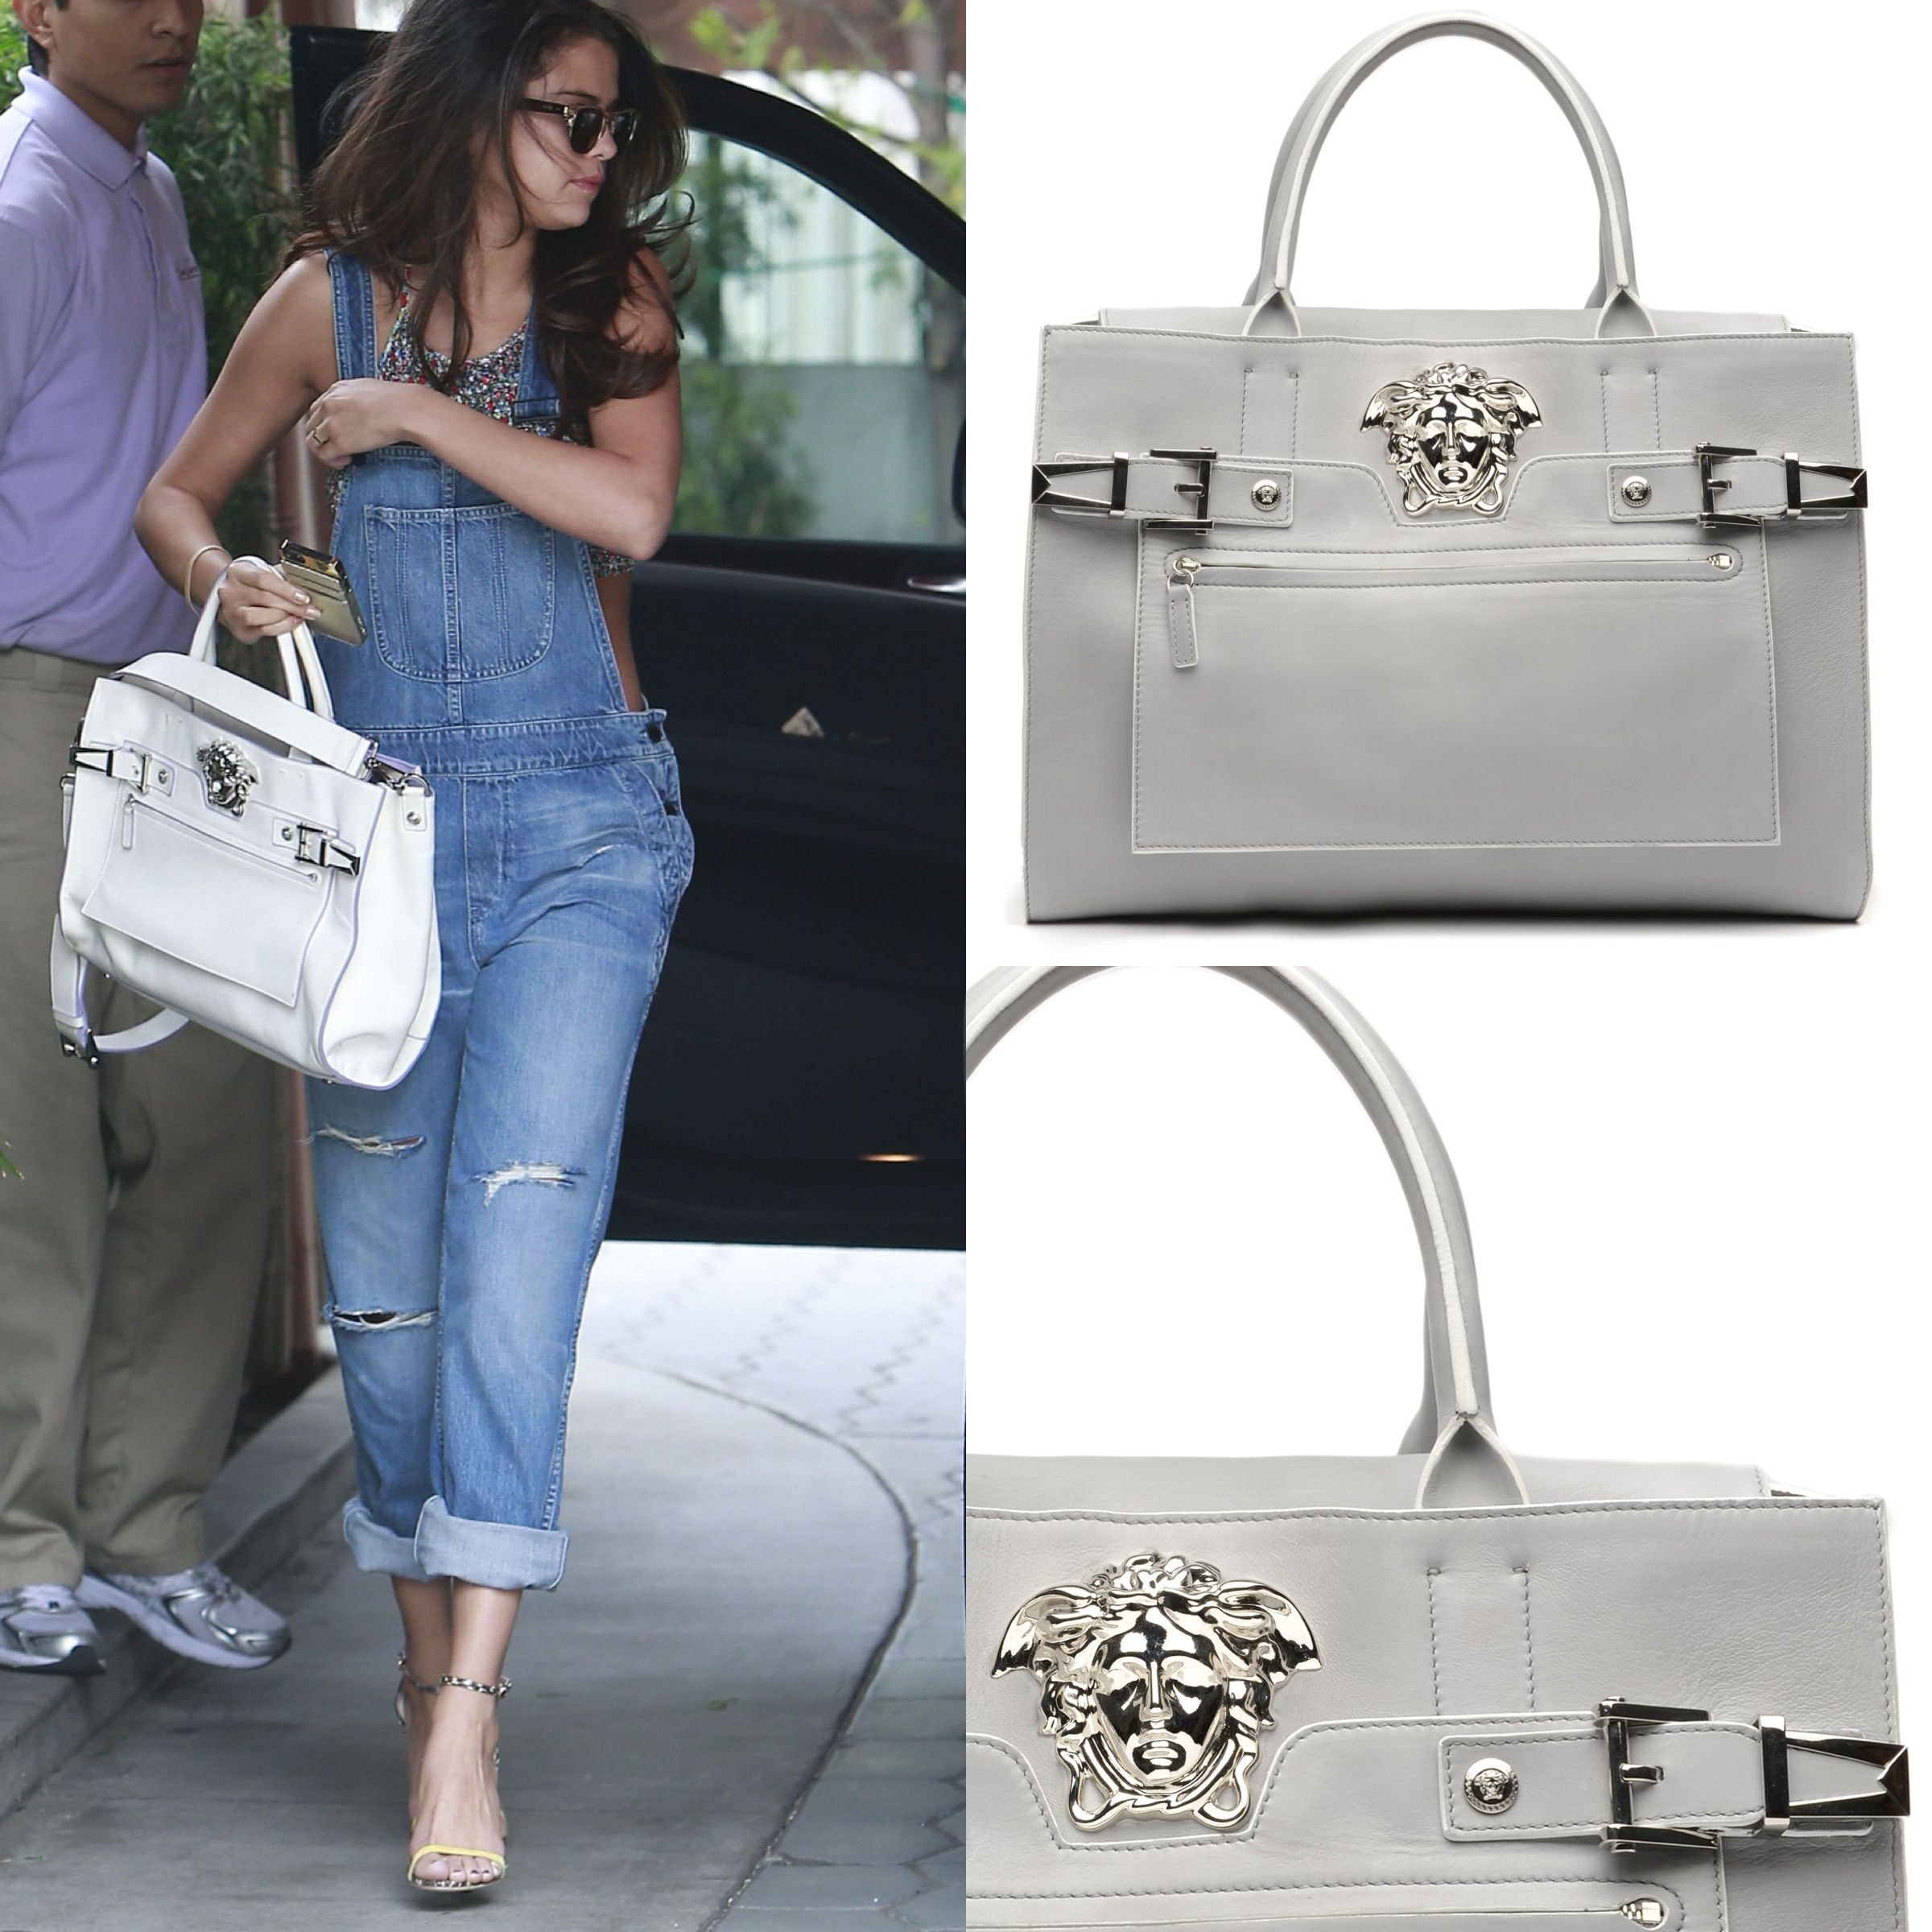 Film and music starlet Selena Gomez was spotted looking gorgeous carrying a white Versace Palazzo bag, highlighting her cool casual look. #VersacePalazzoBag #VersaceCelebrities